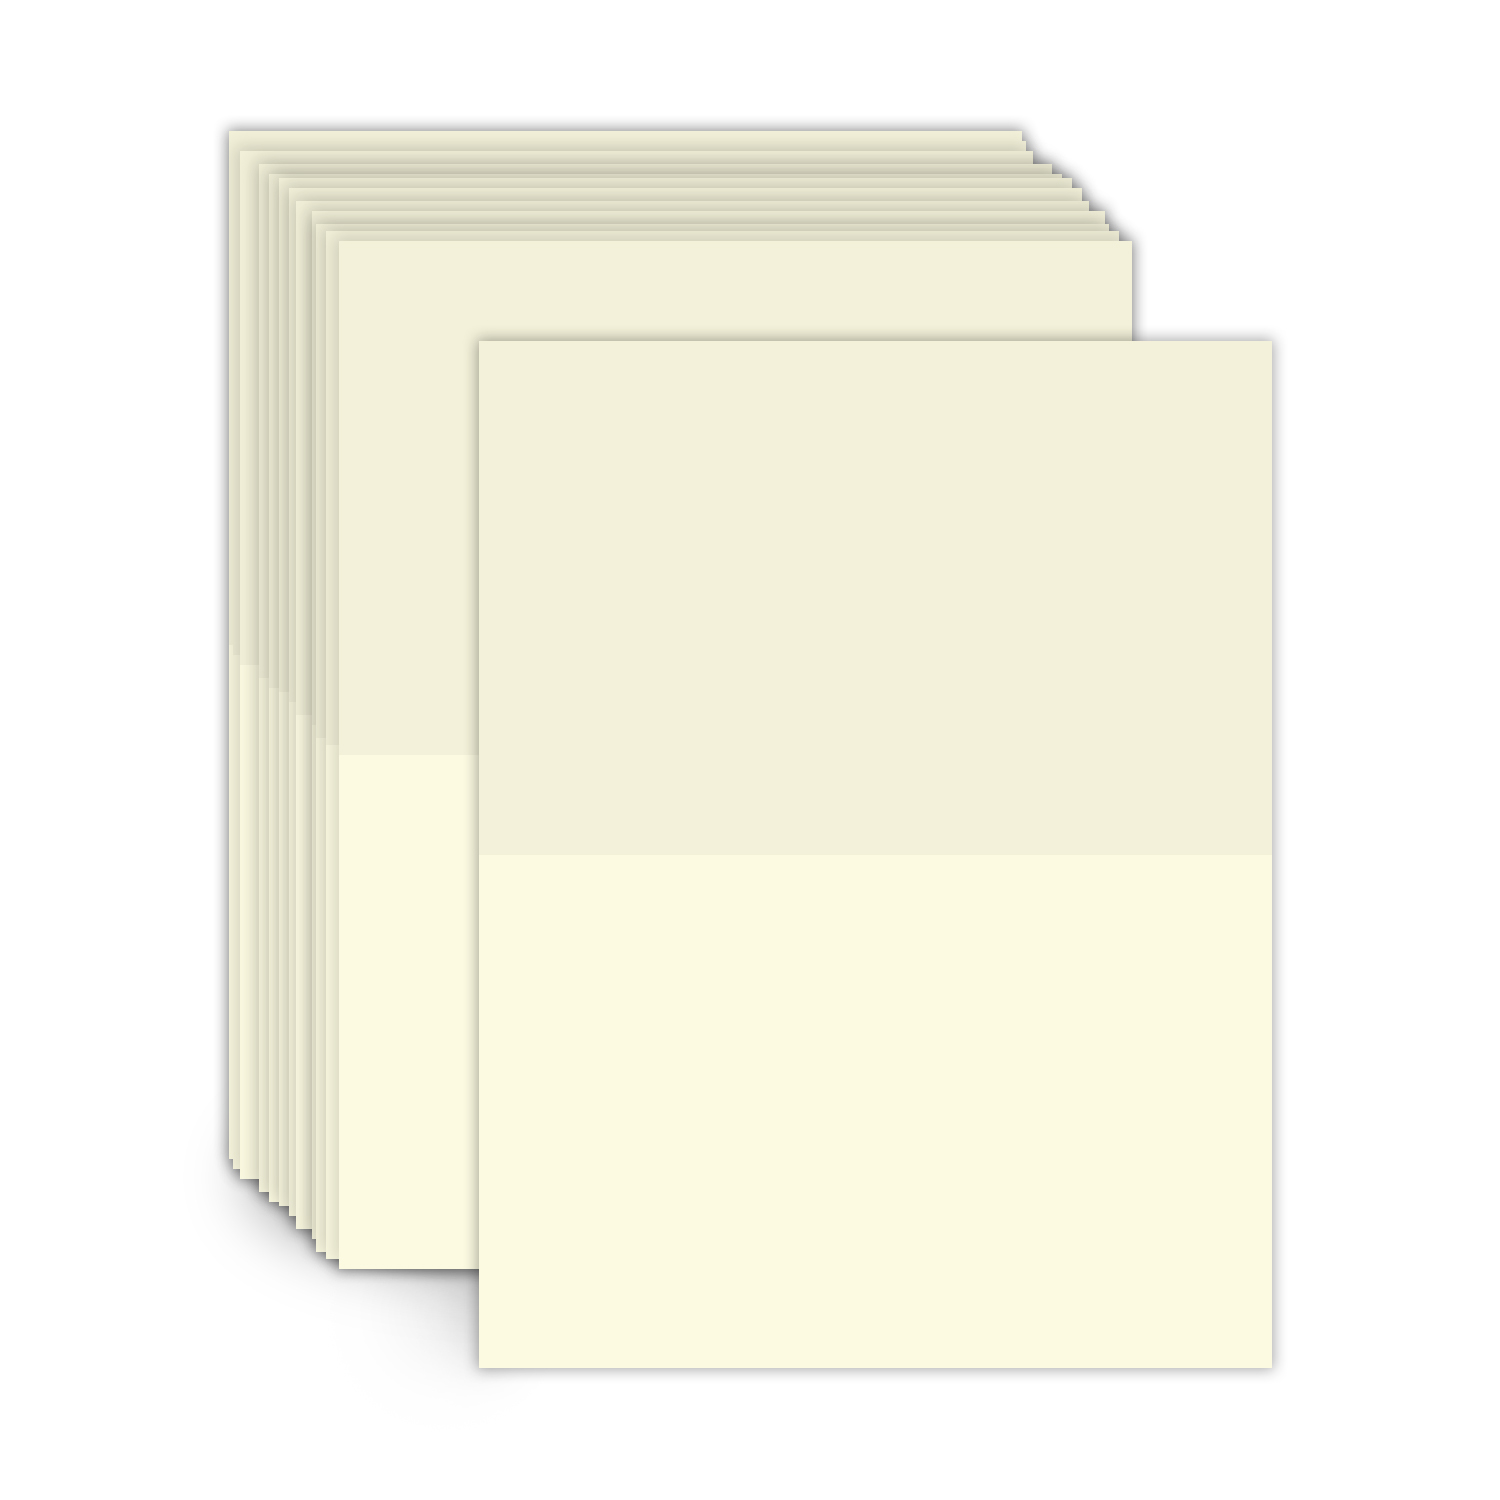 8.5″ X 11″ Scored Foldover Cards